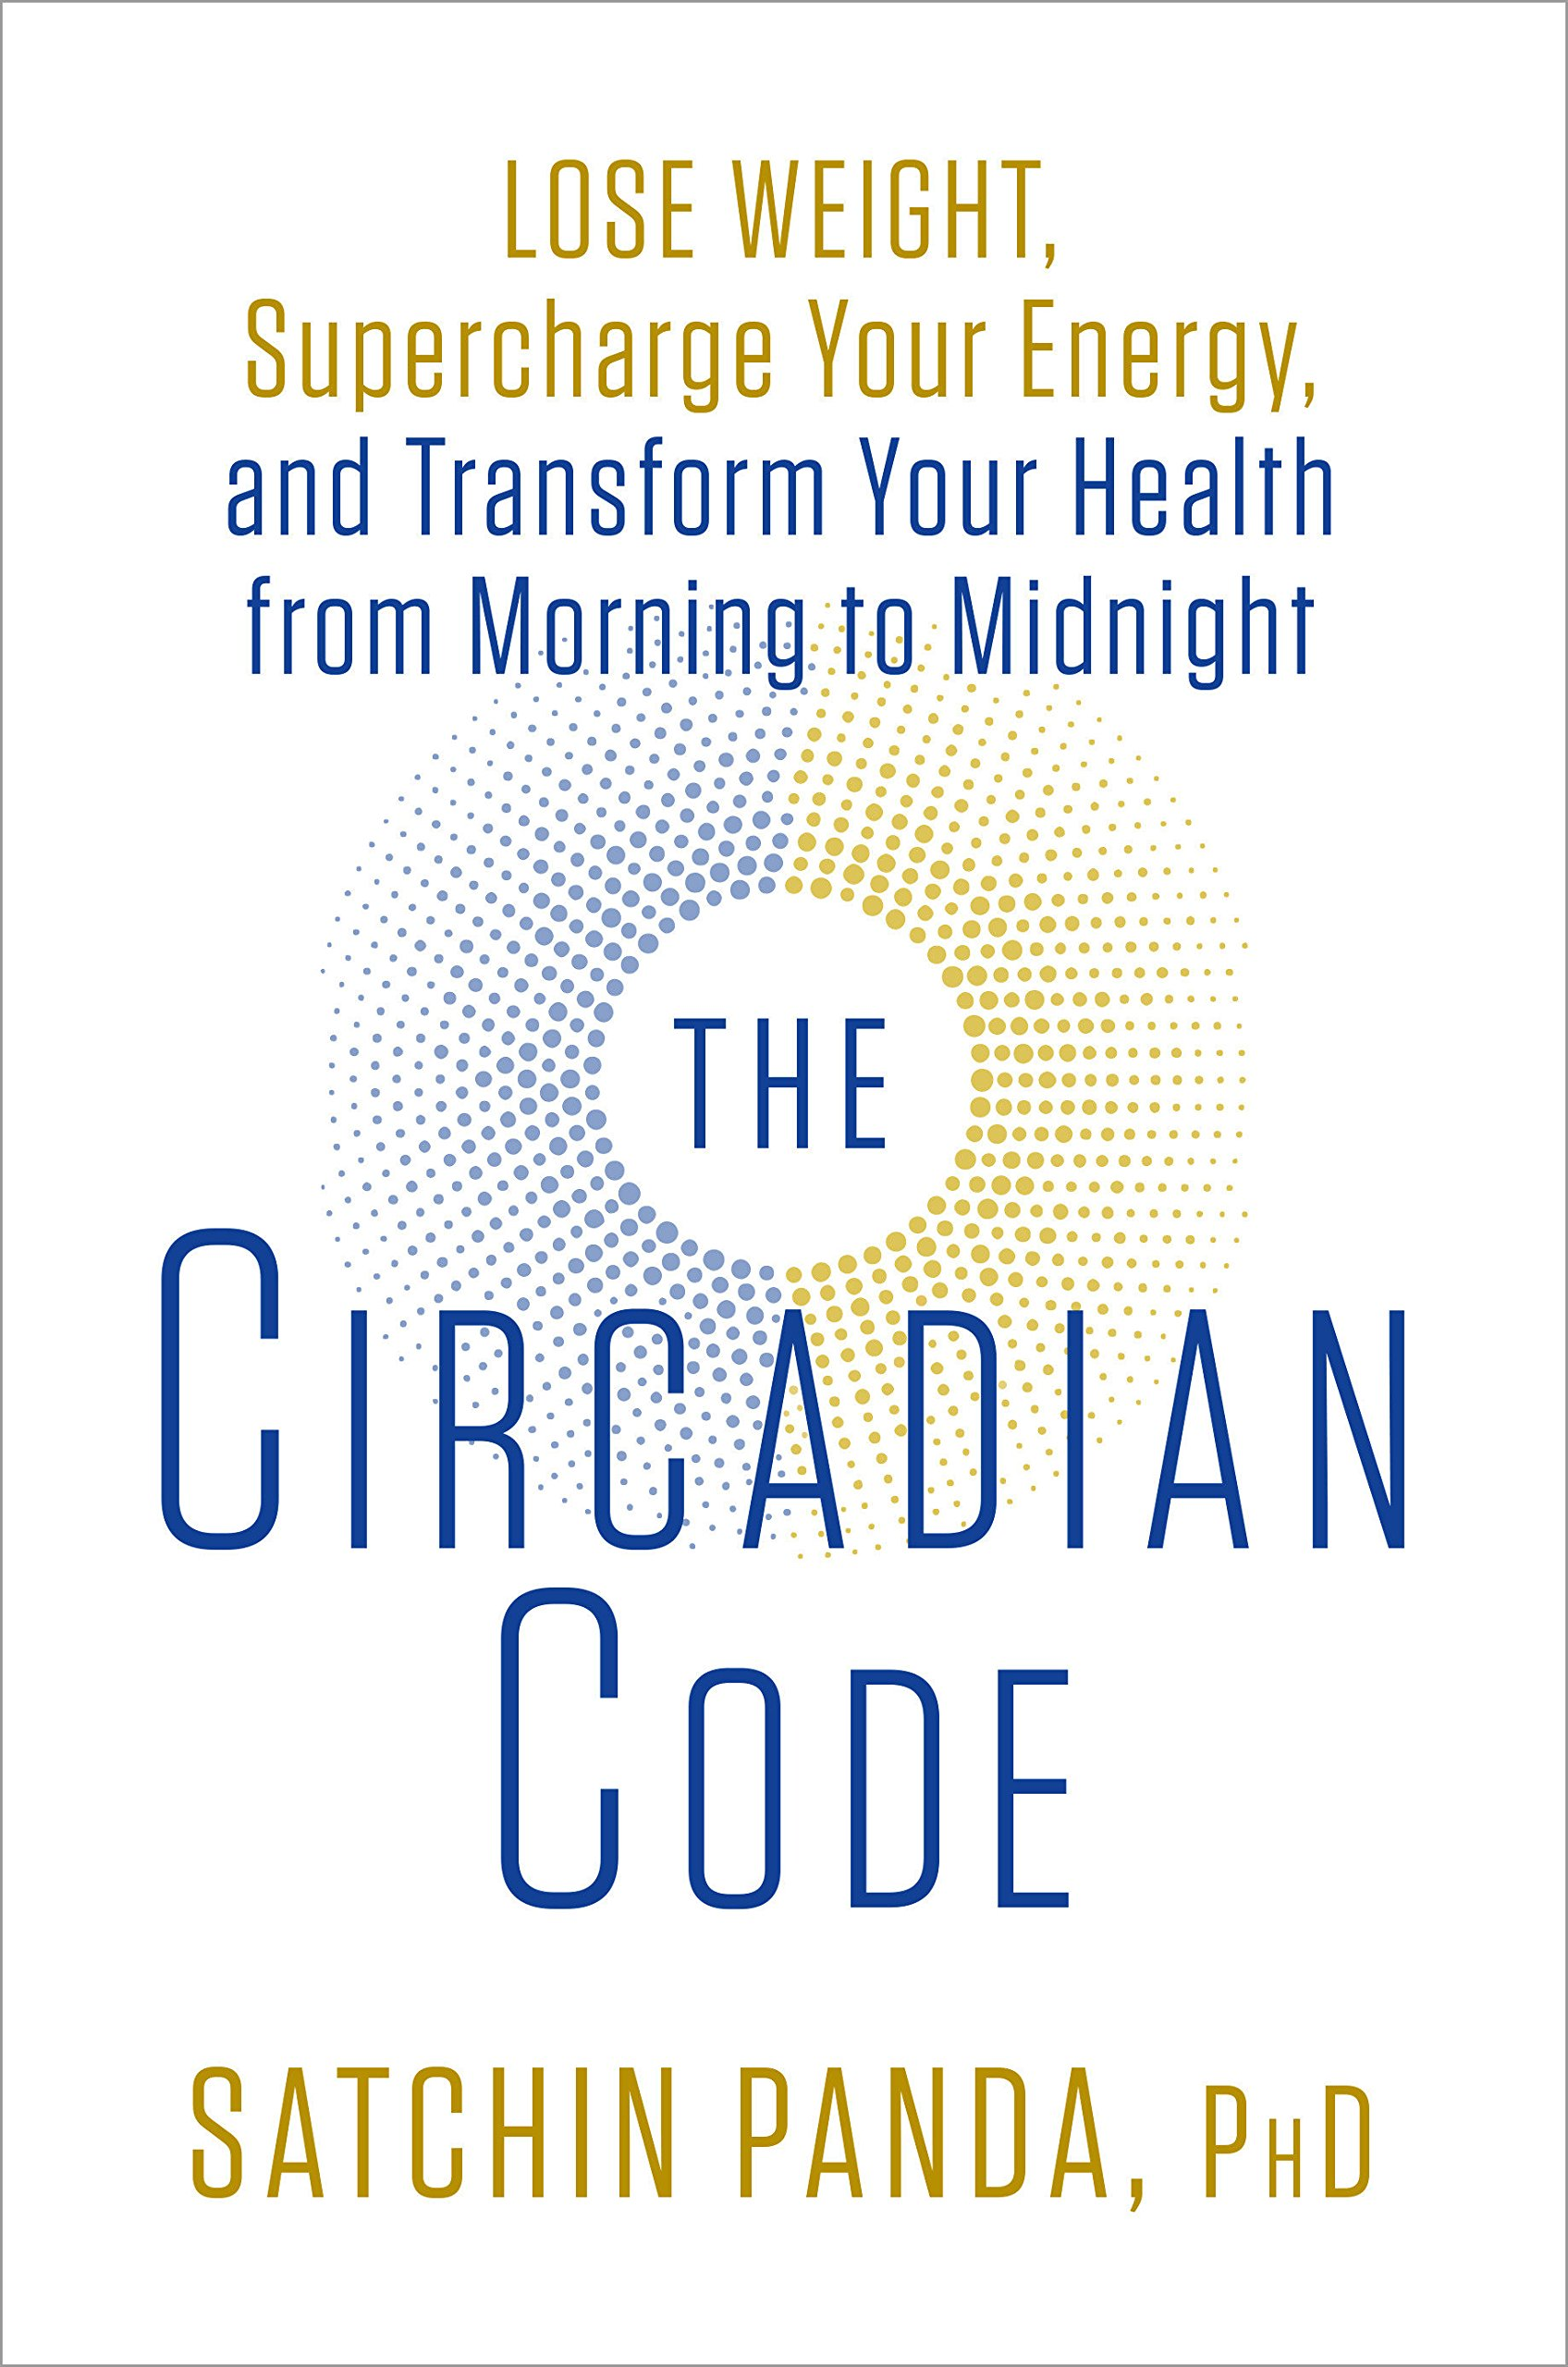 The Circadian Code: Lose Weight, Supercharge Your Energy, and Transform Your Health from Morning to Midnight - by Satchin Panda, PhDWhen we eat may be as important as what we eat.Like most people, you probably wake up, get hungry for meals and doze off in bed around the same time every day. If you've ever experienced jet lag or pulled an all-nighter, you know that this schedule can easily be thrown off kilter. But for some people, that imbalance—difficulty sleeping at night, hunger at odd times, or sudden fatigue at noon—is a constant. If you're one of those people, Dr. Satchin Panda, one of the leading researchers on circadian rhythms, has a plan to reset your body clock.Beginning with an in-depth explanation of the circadian clock—why it's important, how it works, and how to know it isn't working—The Circadian Code outlines lifestyle changes to make to get back on track. It's a concrete plan to enhance weight loss, improve sleep, optimize exercise, and manage technology so that it doesn't interfere with your body's natural rhythm. Dr. Panda's life changing methods show you how to prevent and reverse ailments like diabetes, cancer, and dementia, as well as microbiome conditions like acid reflux, heartburn, and irritable bowel disease.